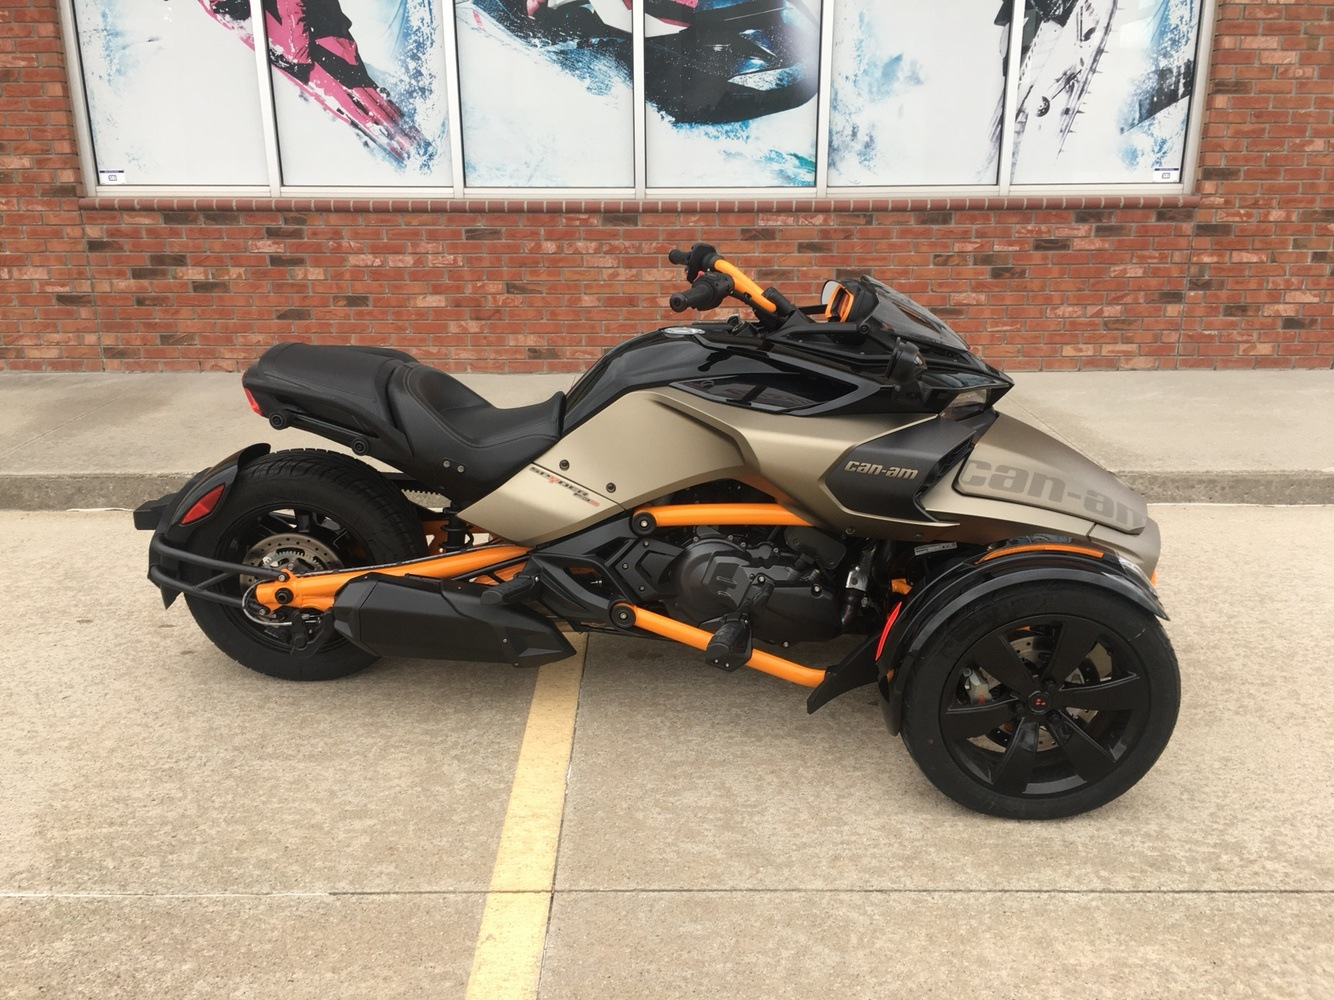 2019 Can-Am Spyder F3-S Special Series in Omaha, Nebraska - Photo 1